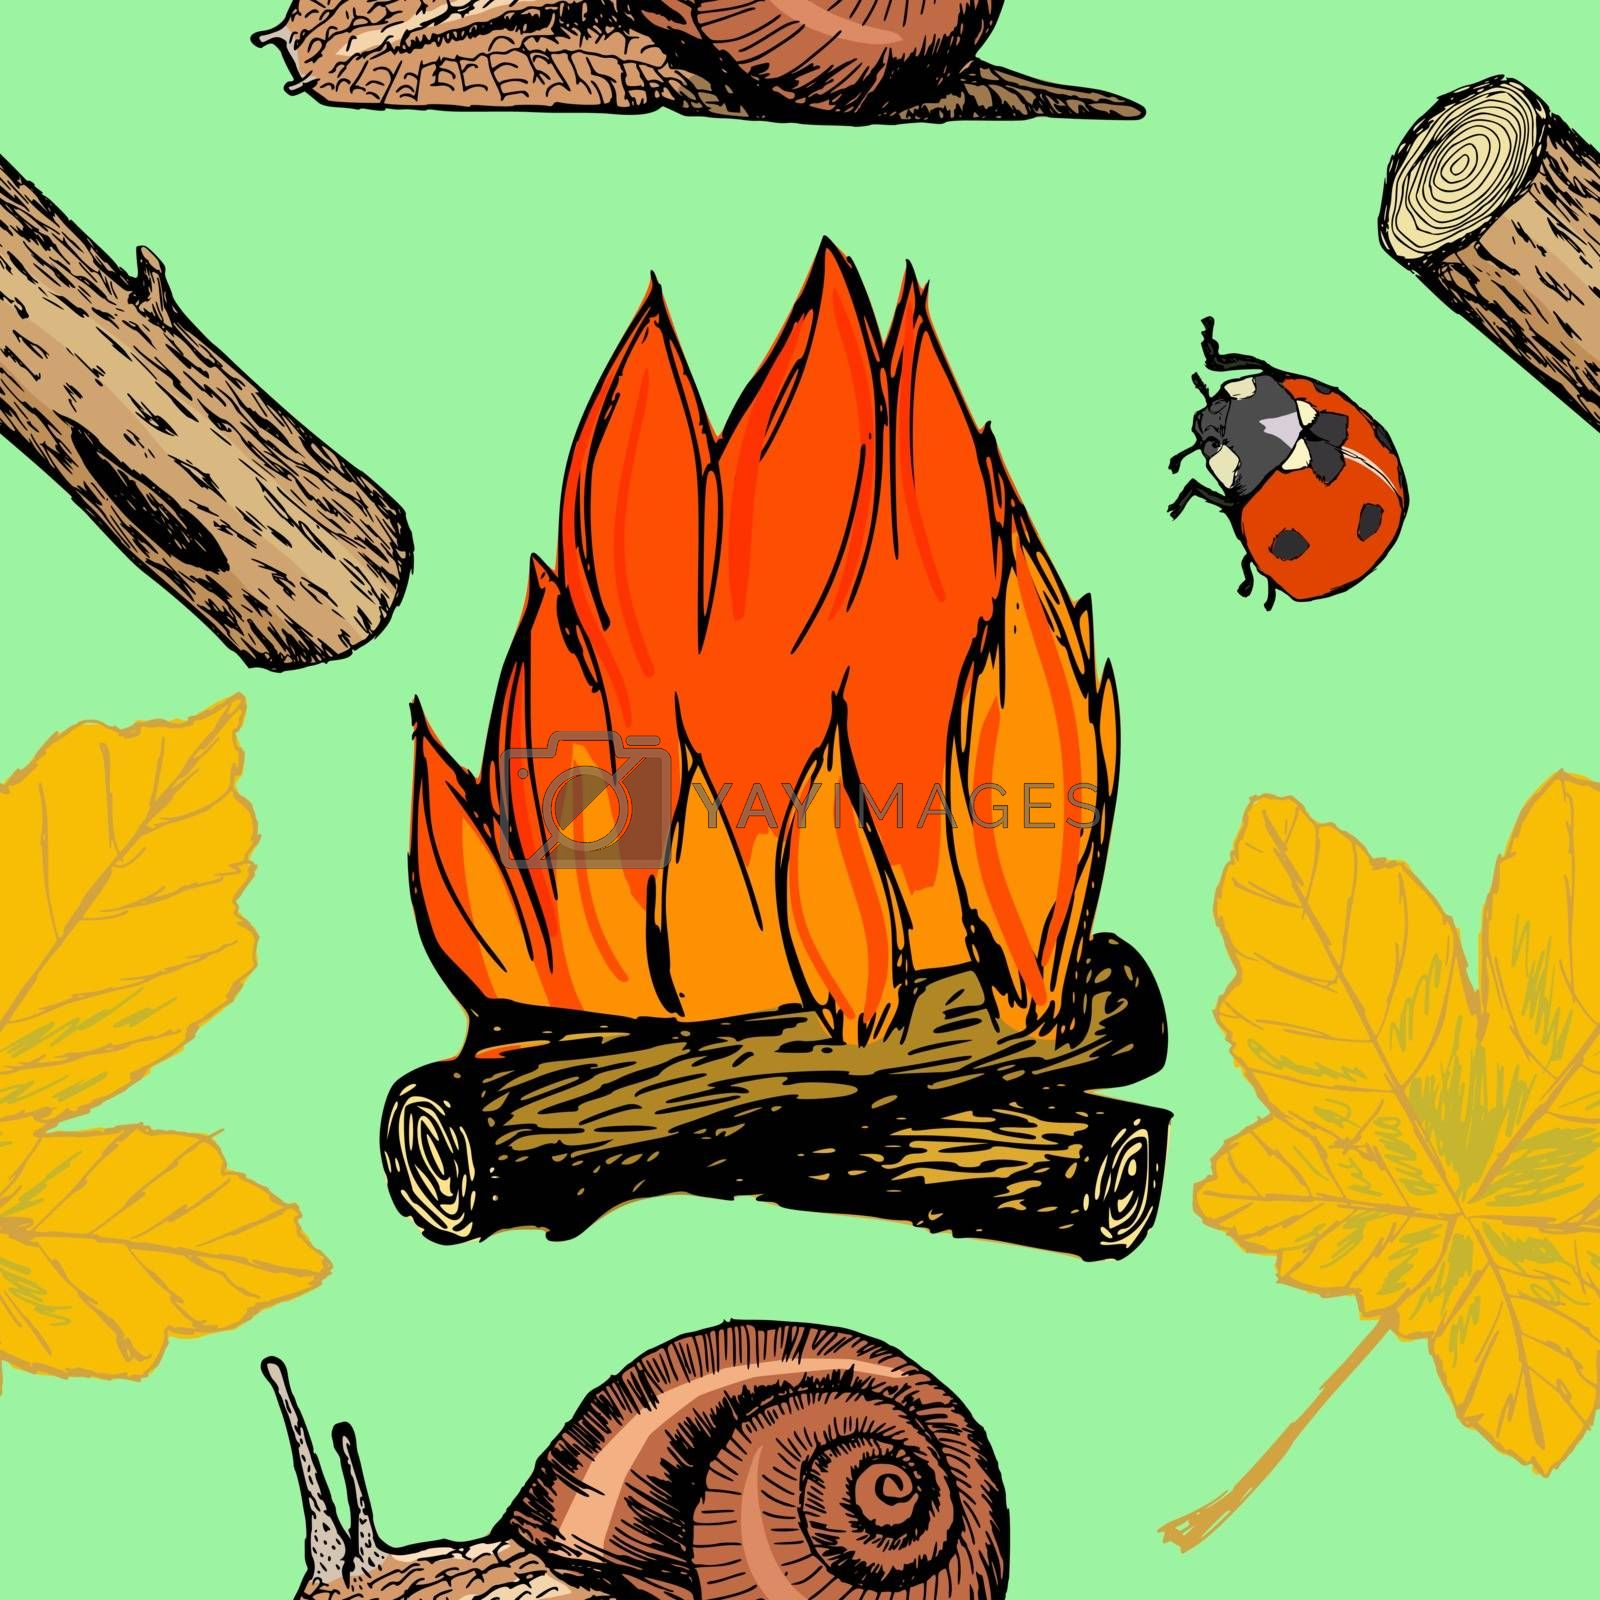 coloured seamless pattern with motive of campfire